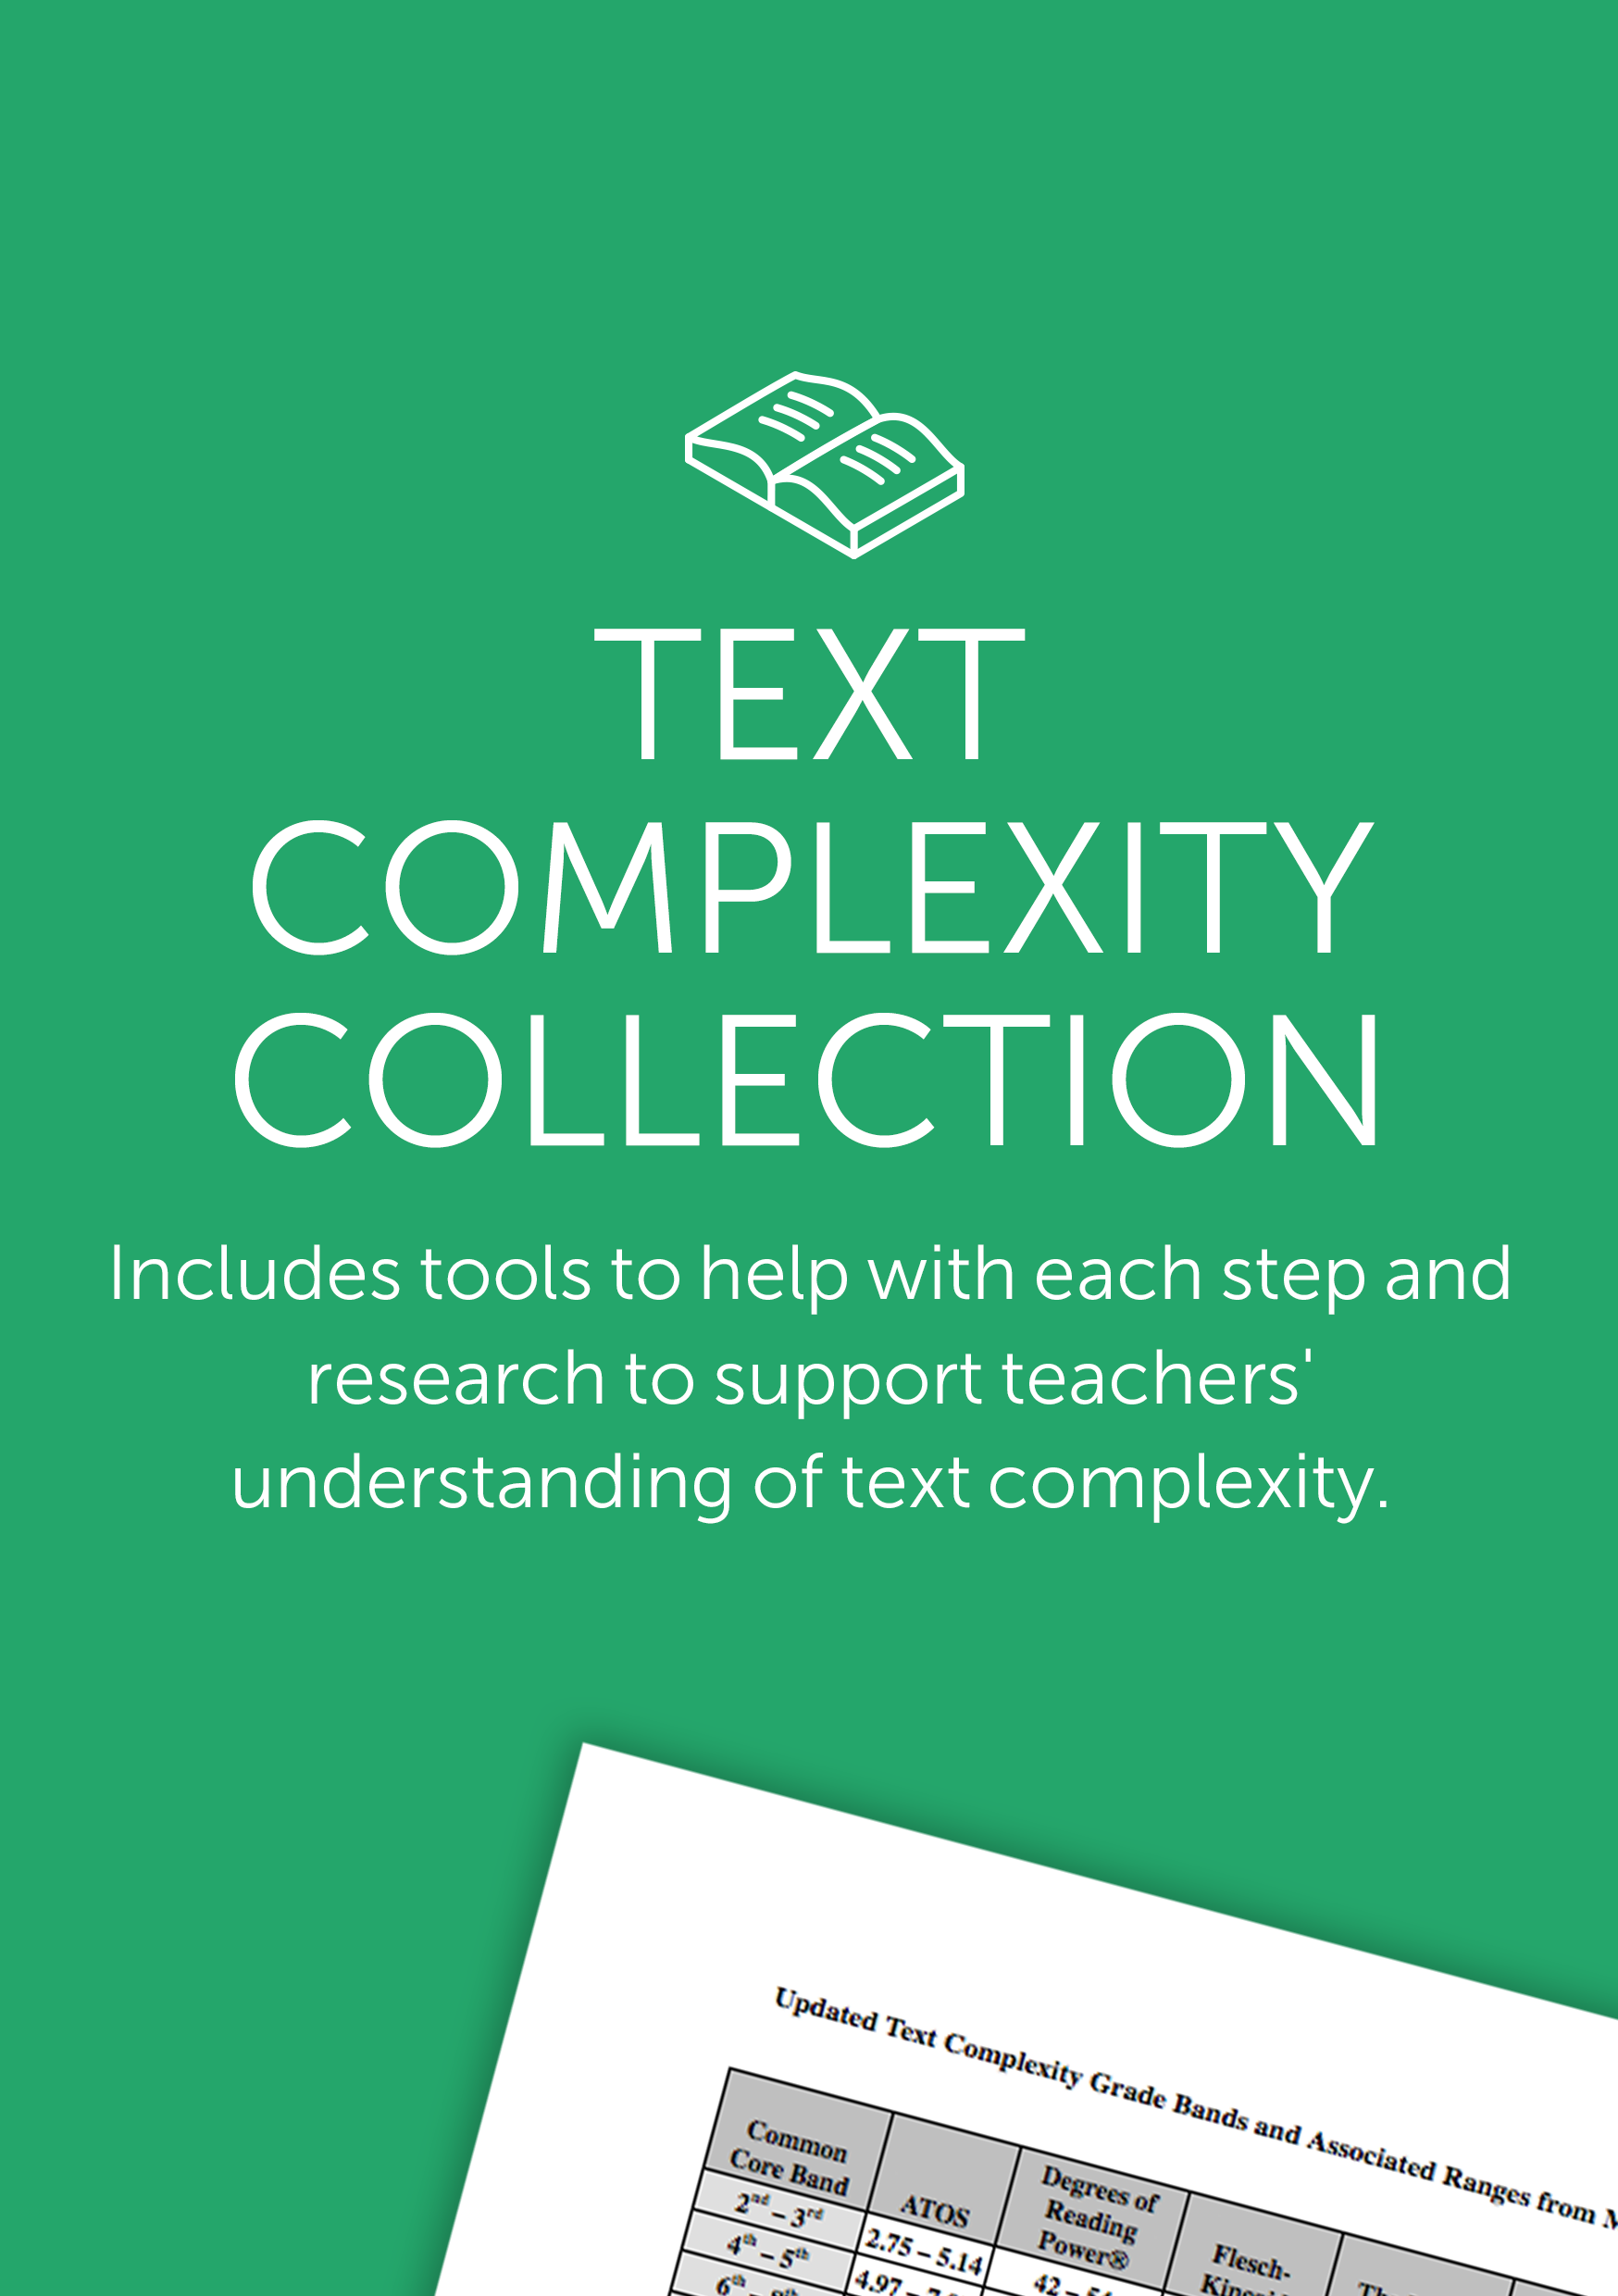 Tools to help understand complex text and introduce it to your students.